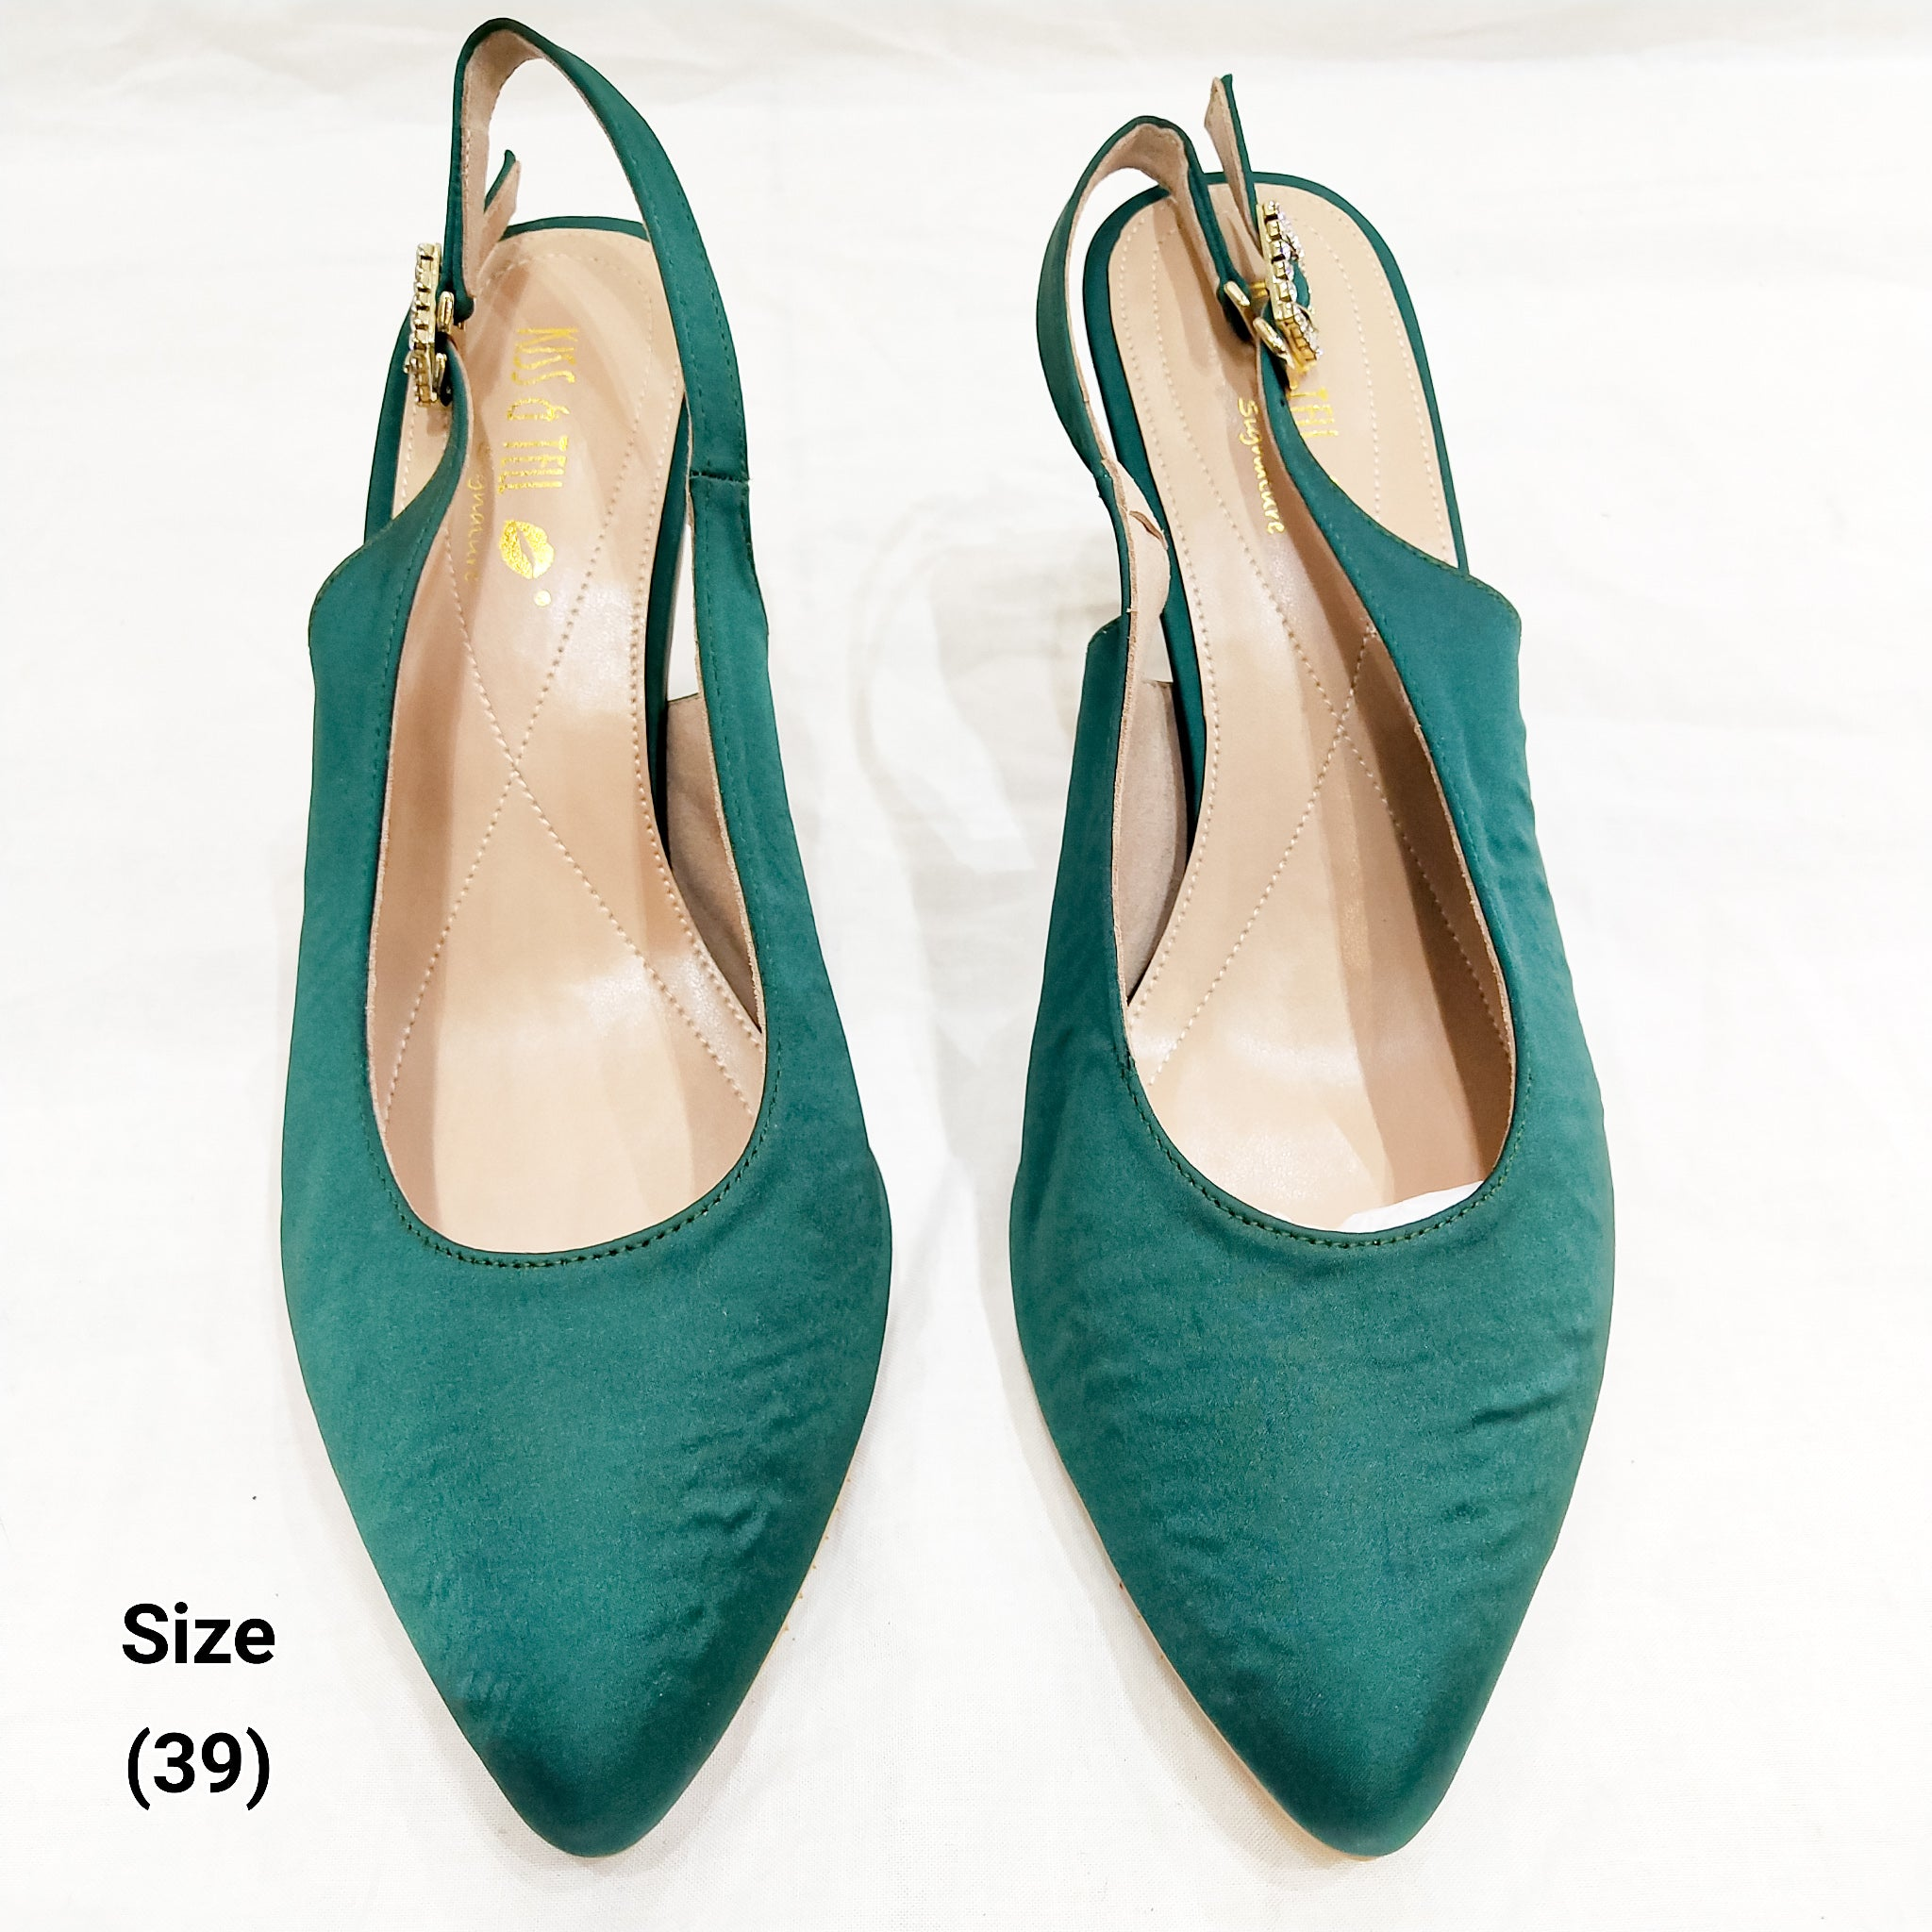 Elena Heels in Emerald (Reject)